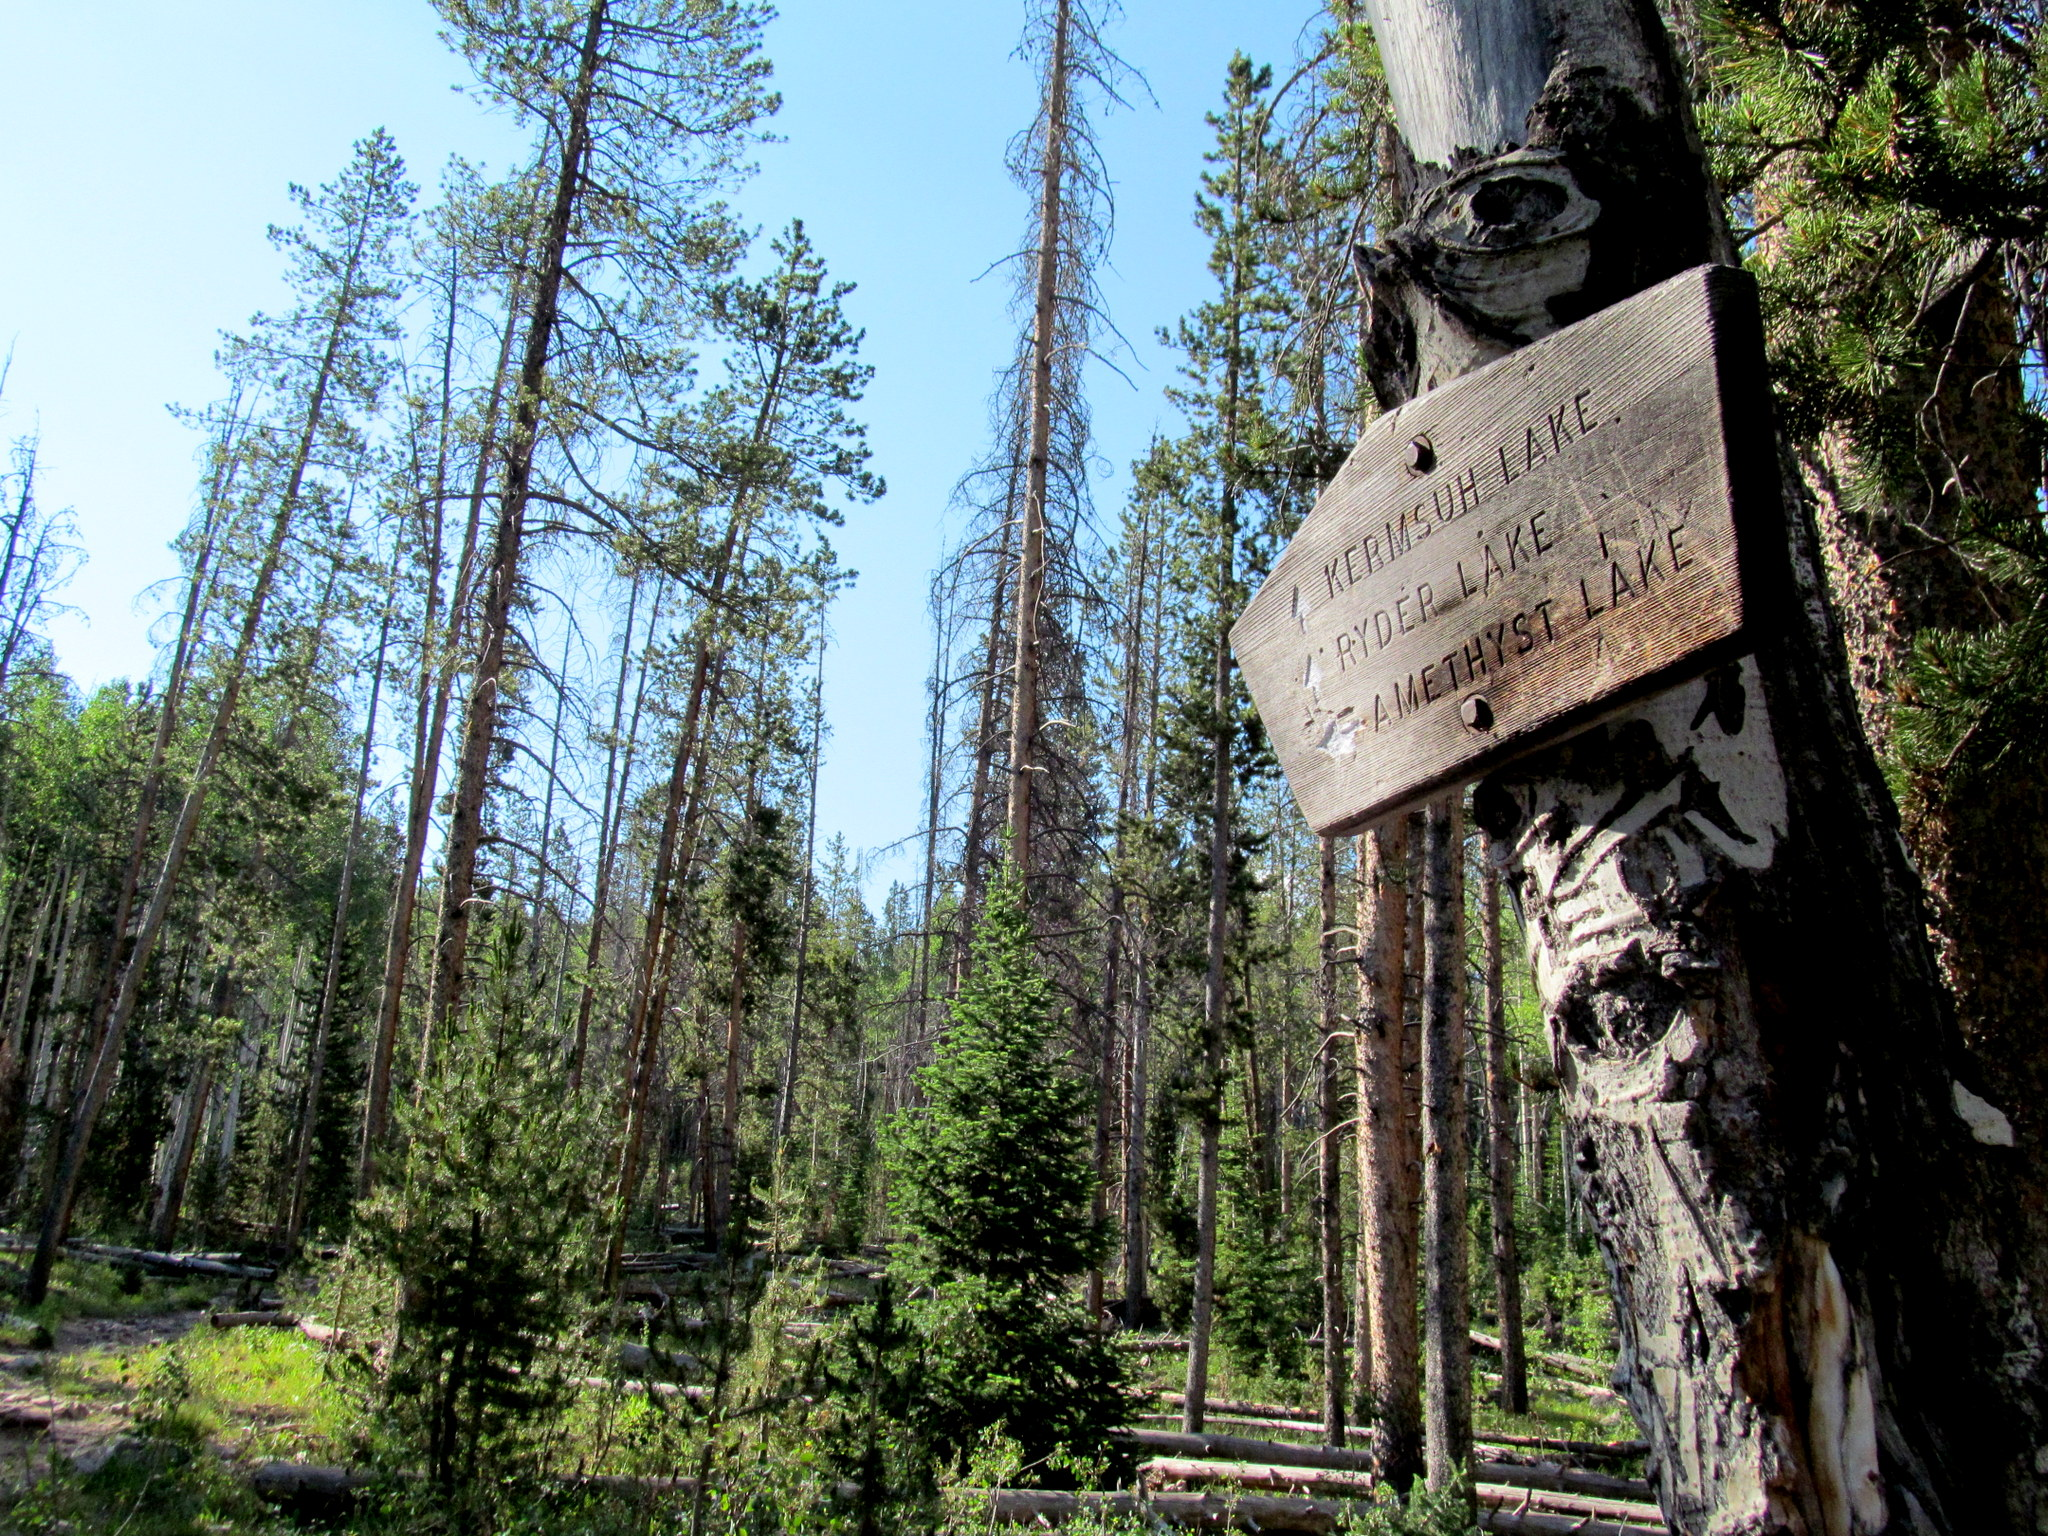 Photo: Sign pointing to Kermsuh, Ryder, and Amethyst lakes